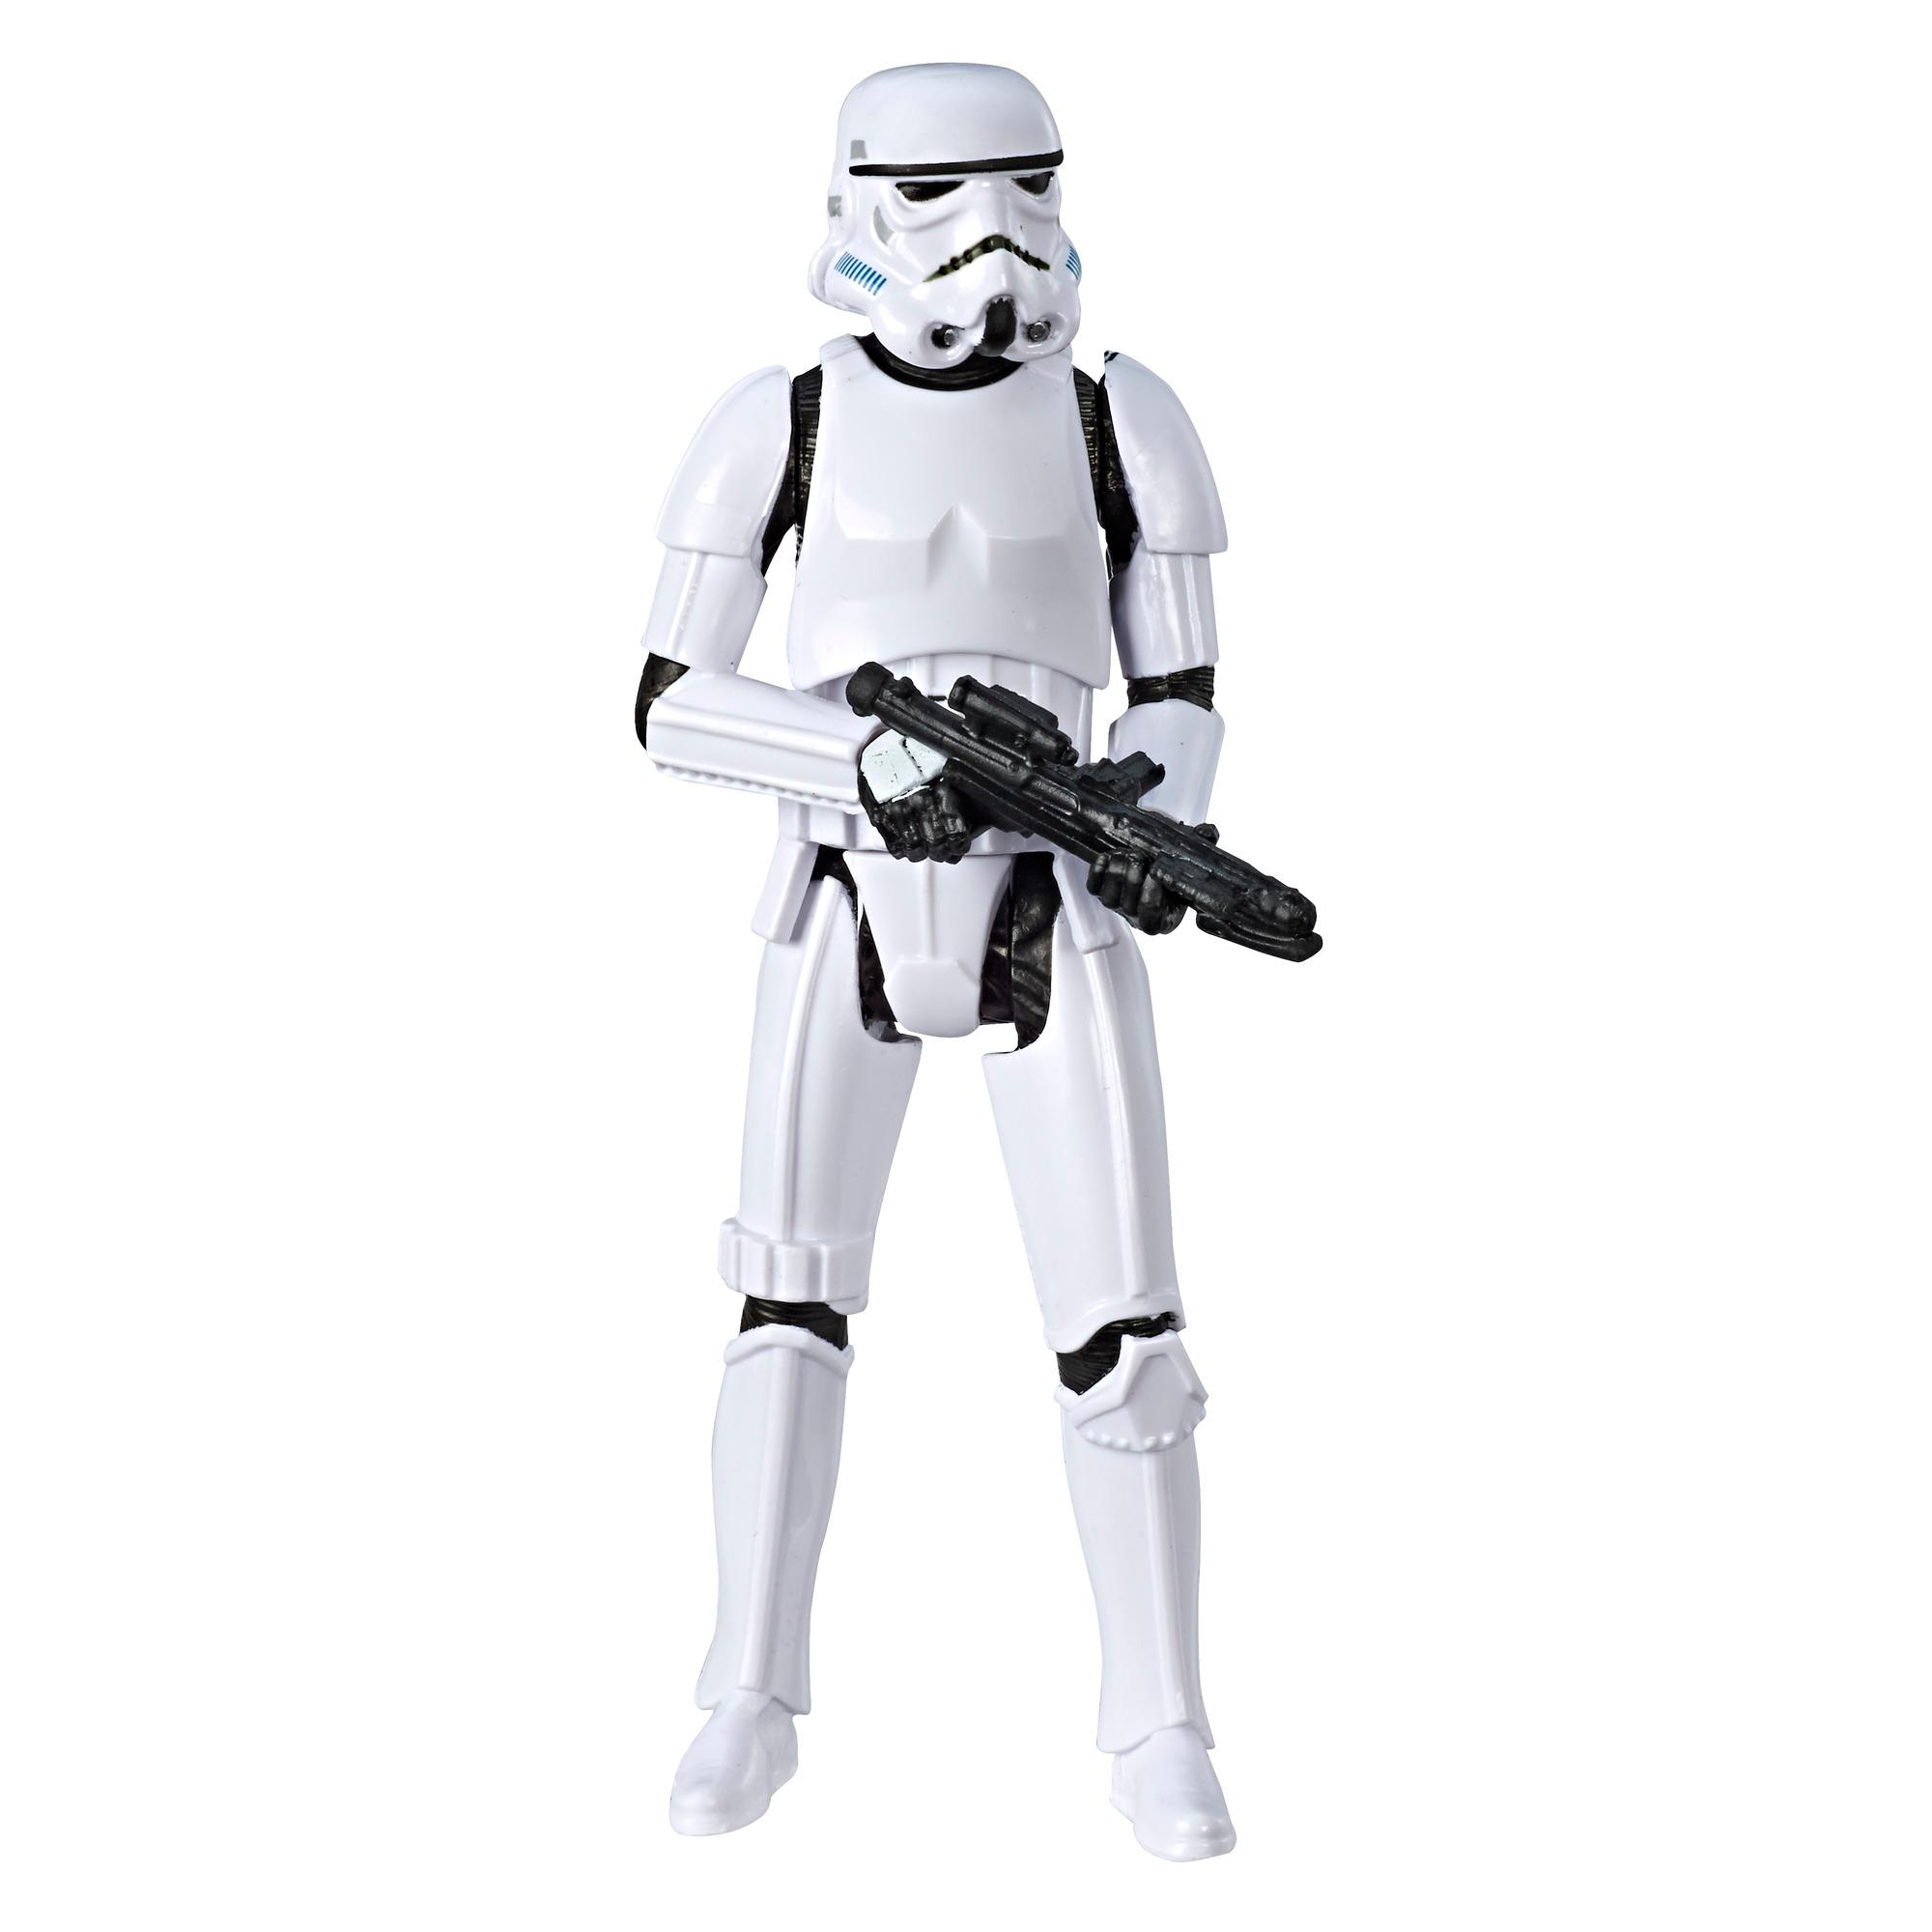 Star Wars Galaxy of Adventures Imperial Stormtrooper Figure and Mini Comic